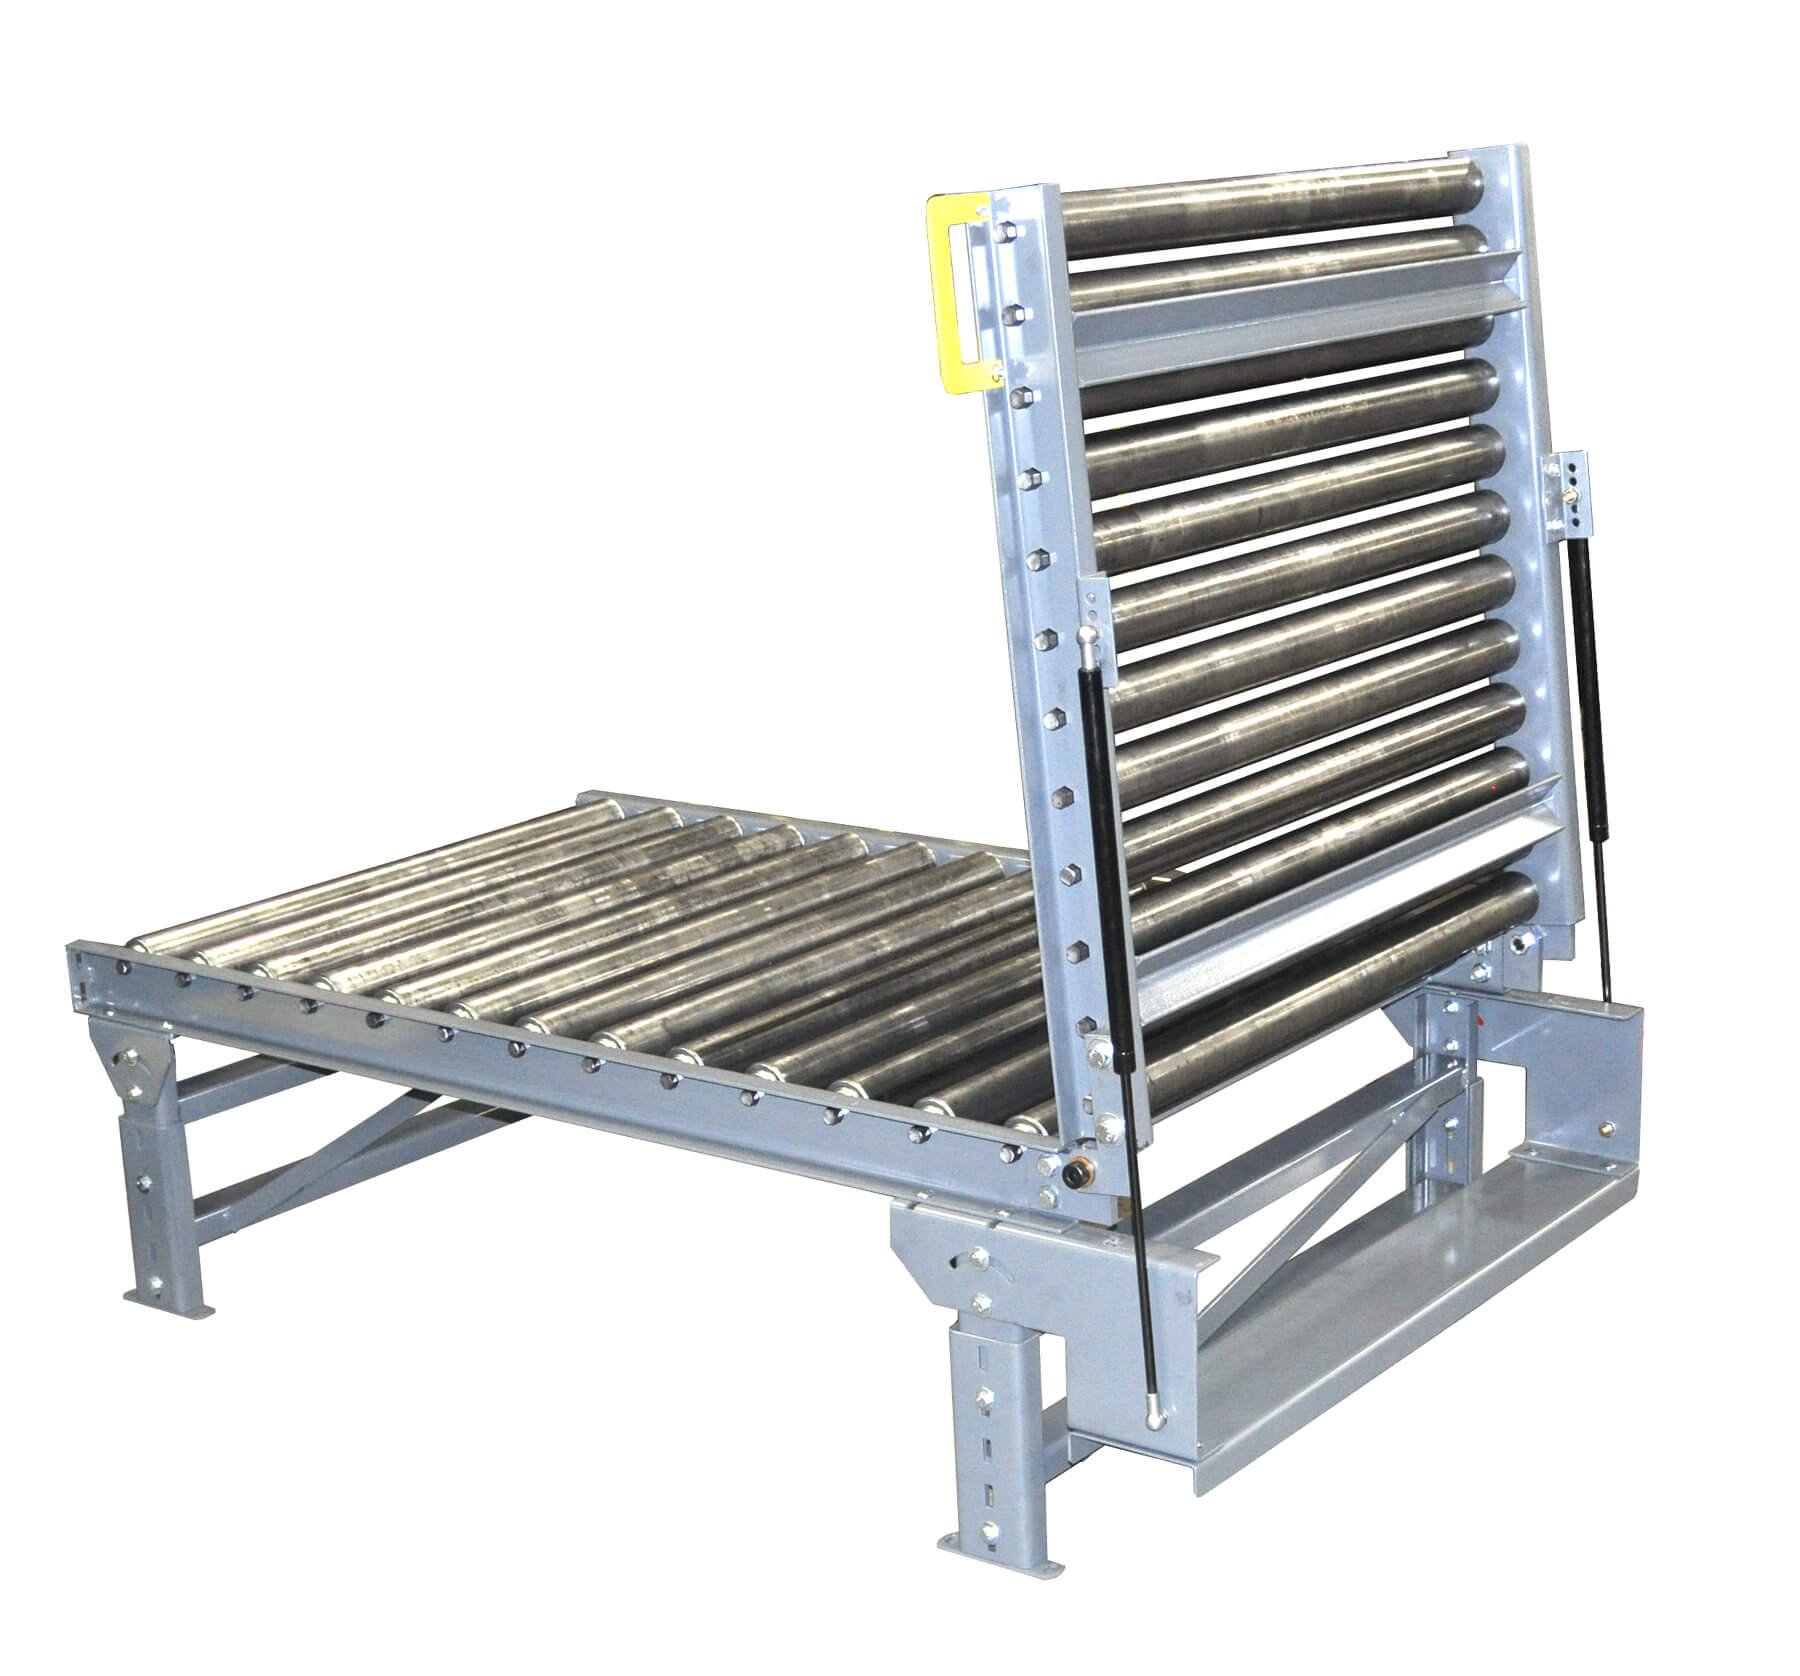 Model 419 Gravity Roller Conveyor Titan Industries Inc